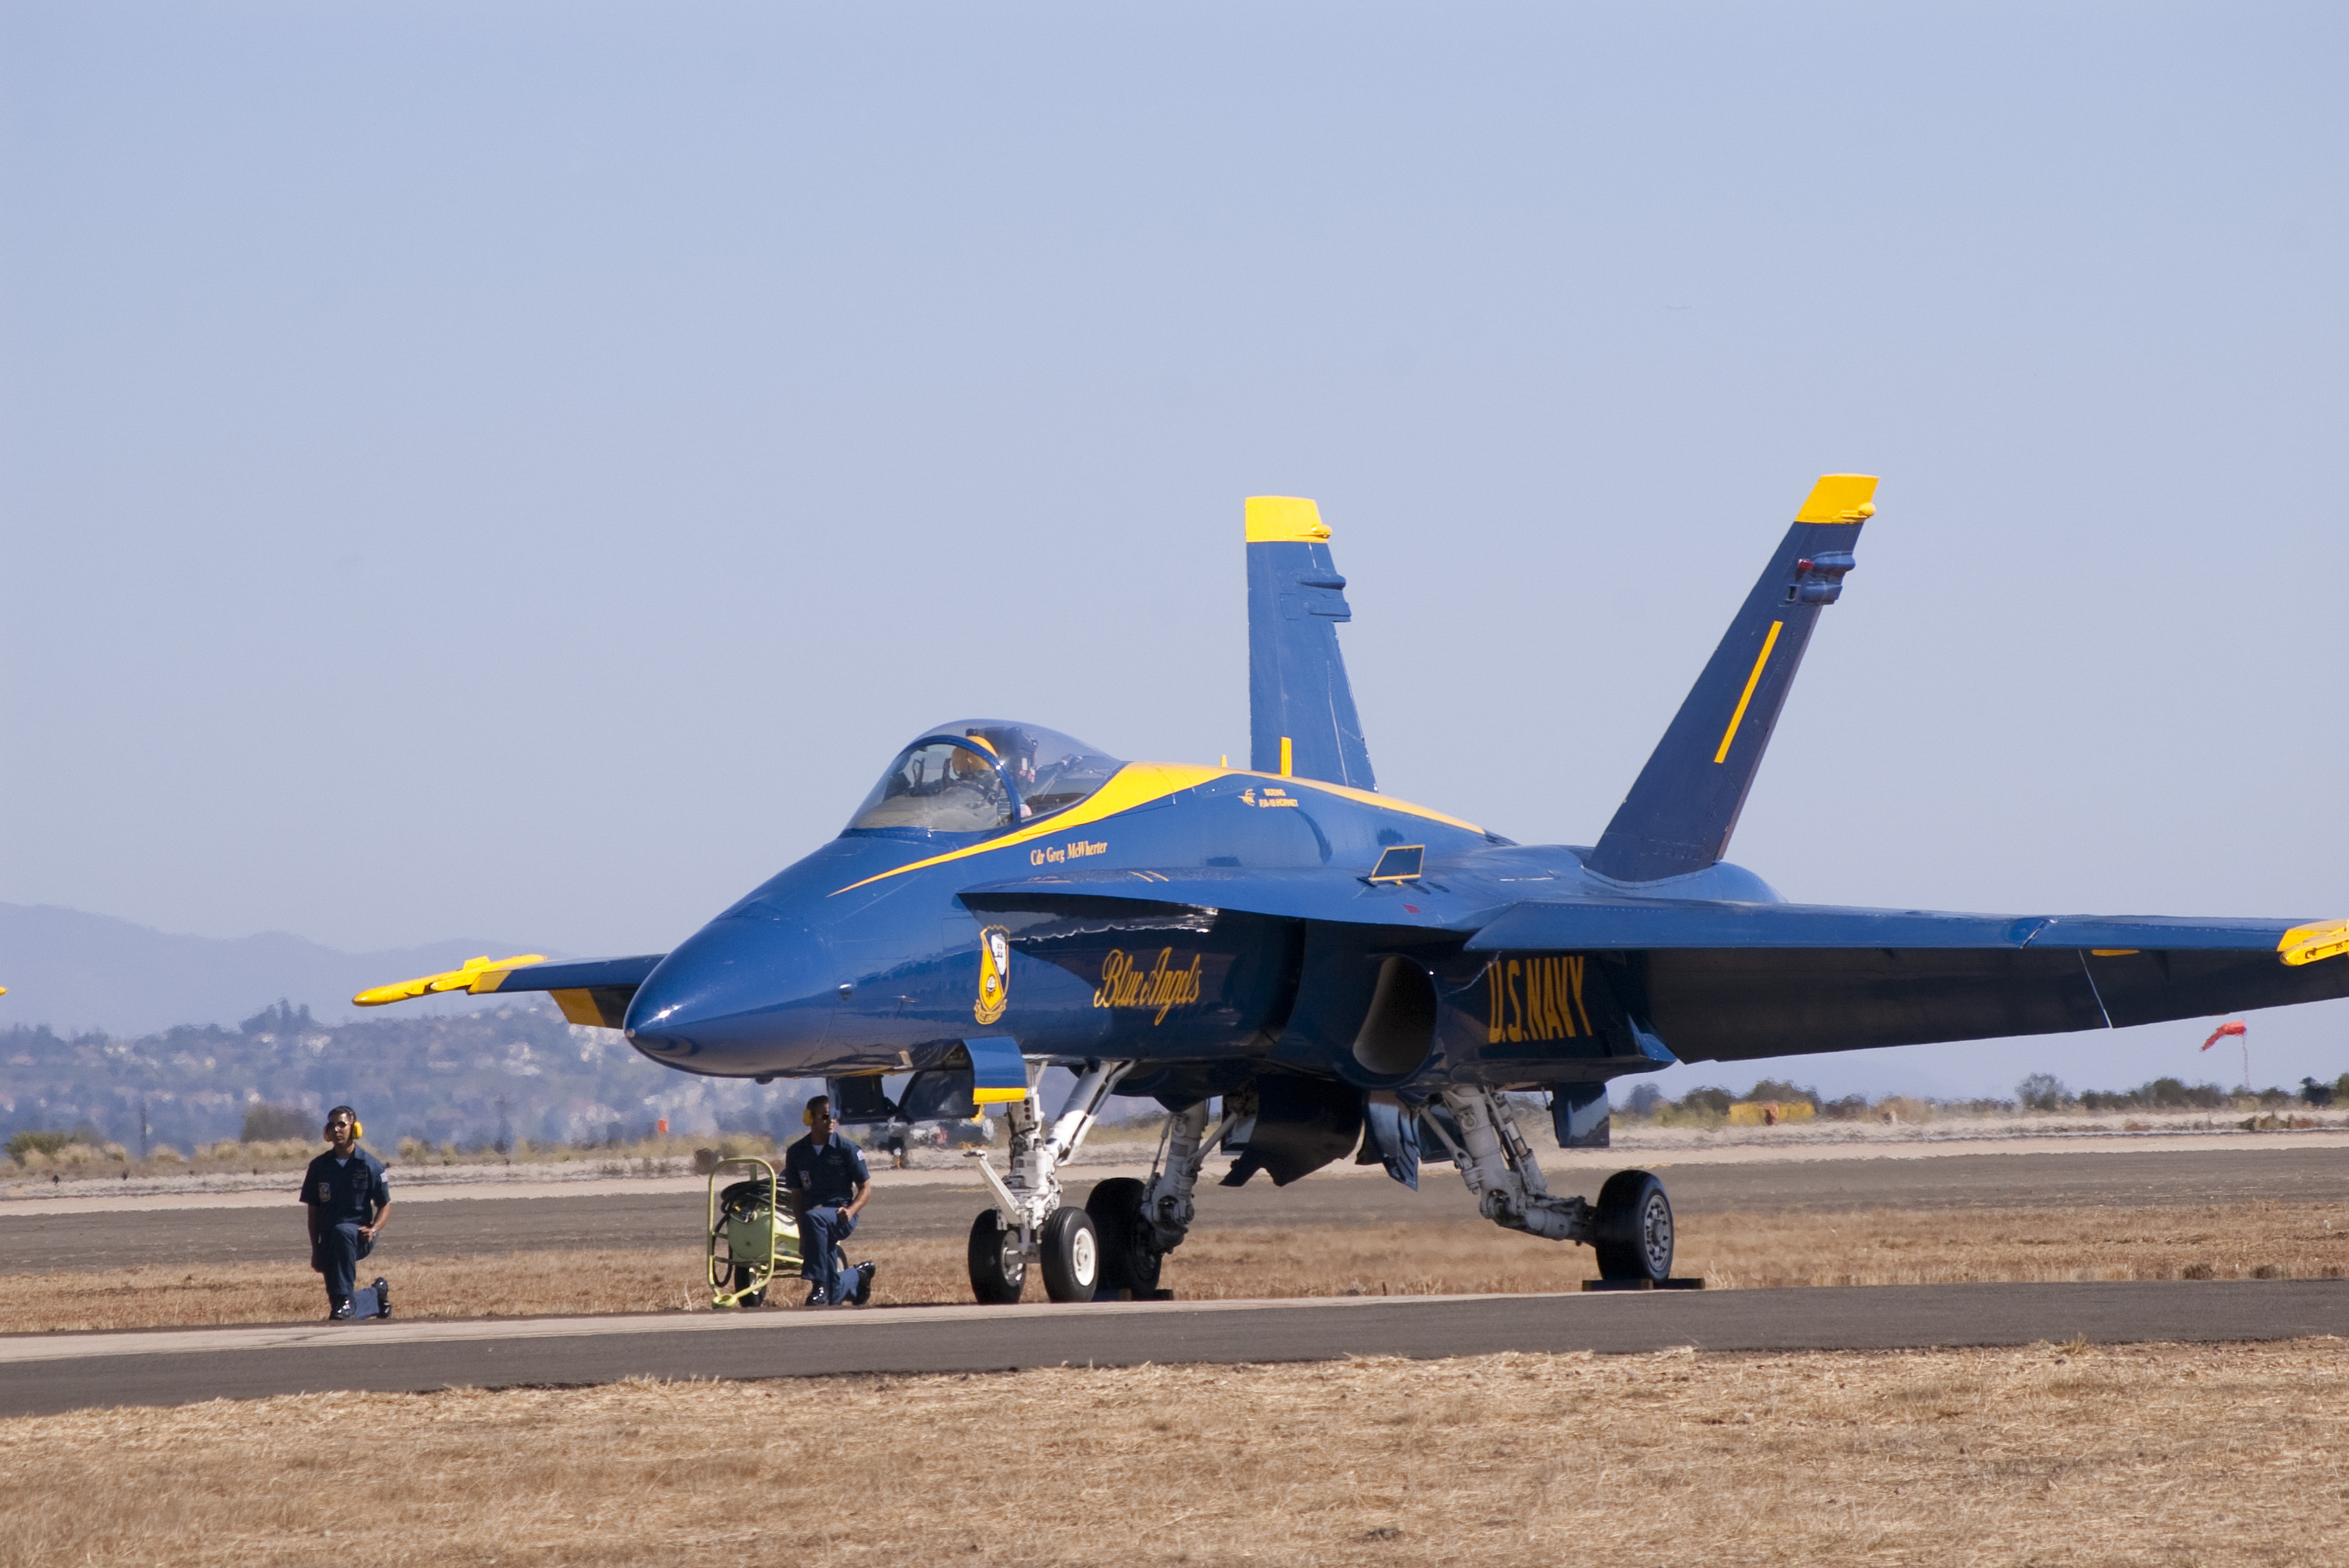 a US navy FA18 Hornet, part of the blue angels airshow dispaly team